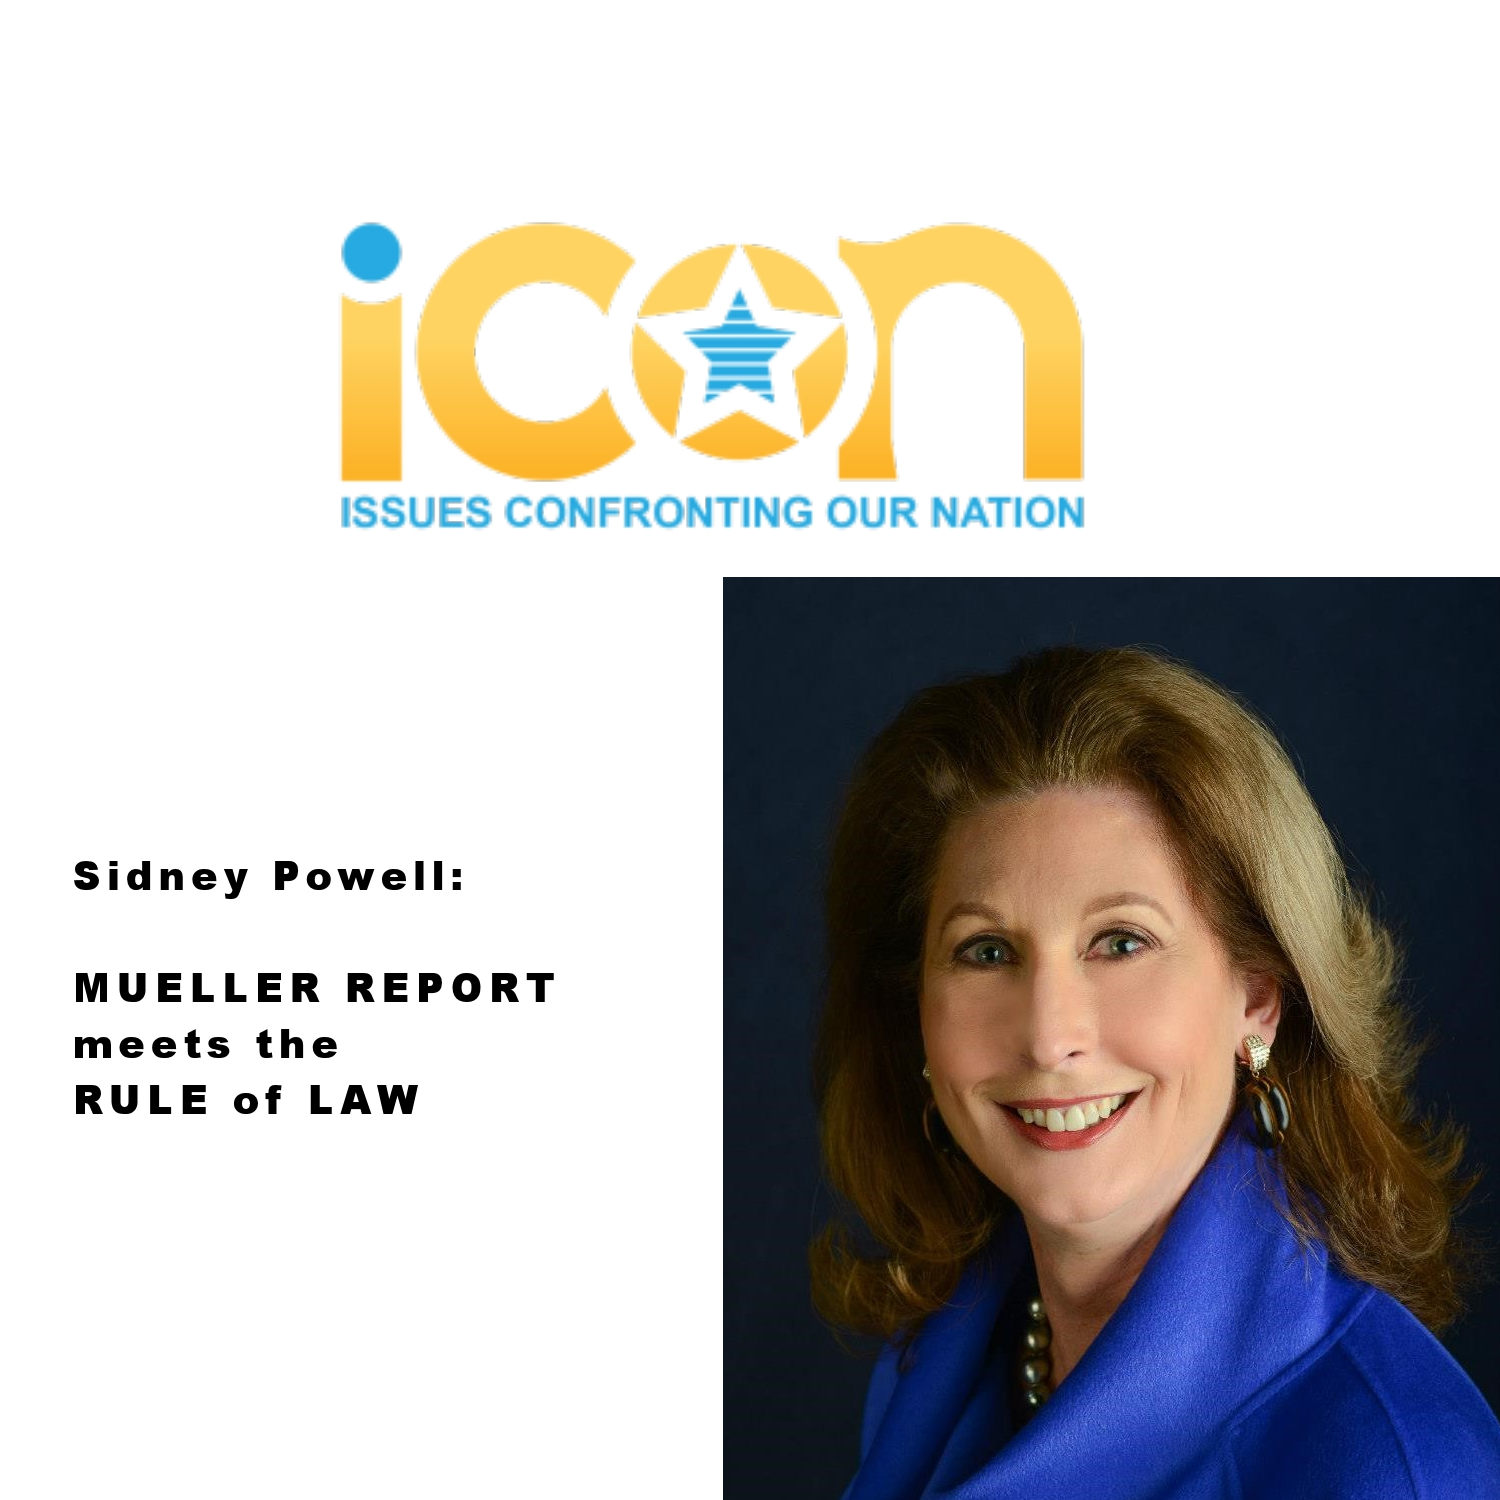 Sidney Powell speaks on Robert Mueller's Report